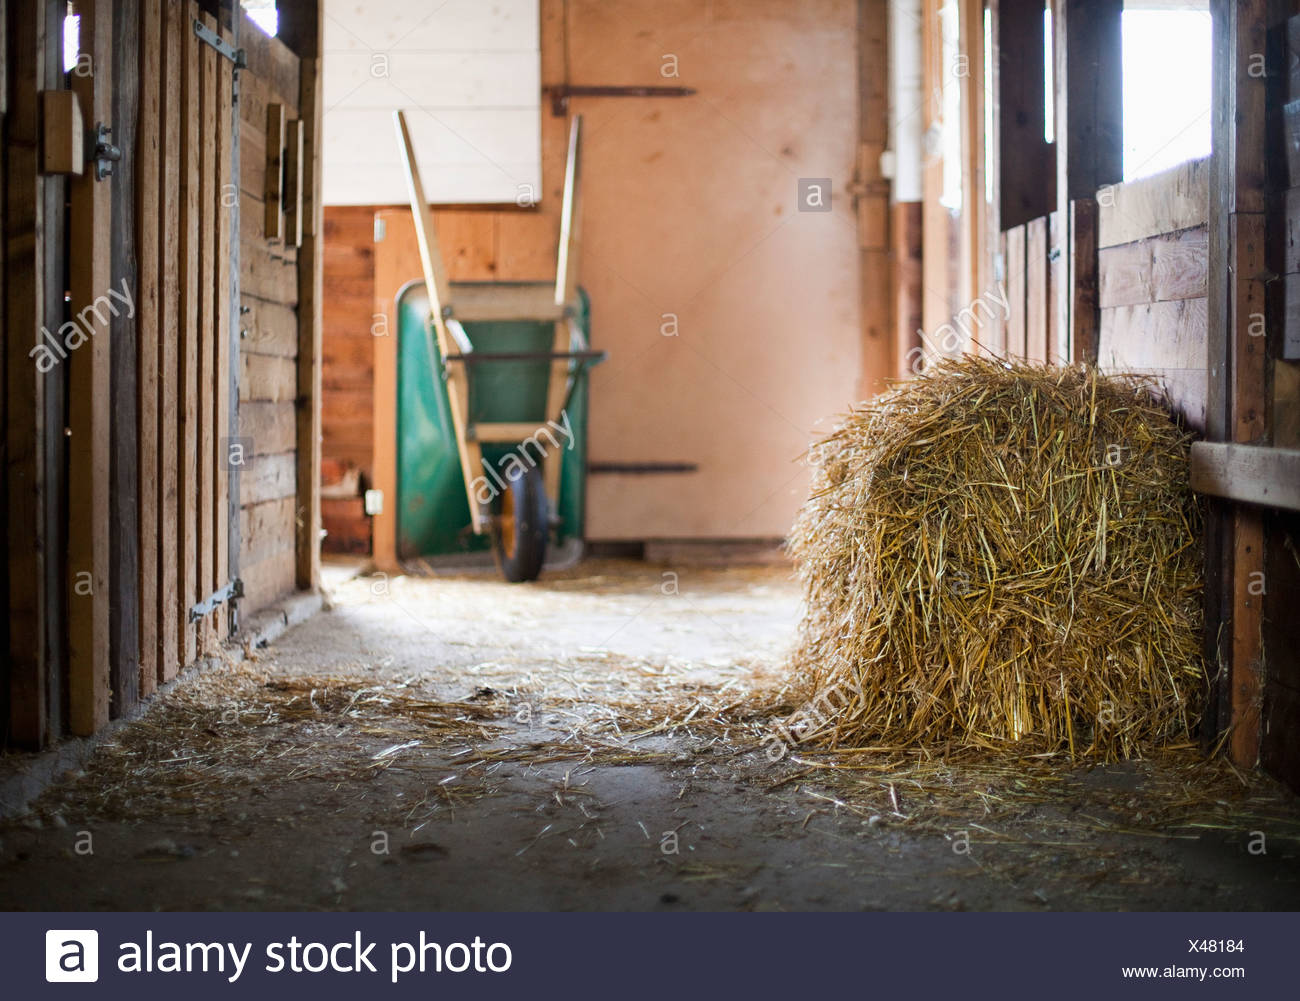 Hay with wheelbarrow in the background - Stock Image